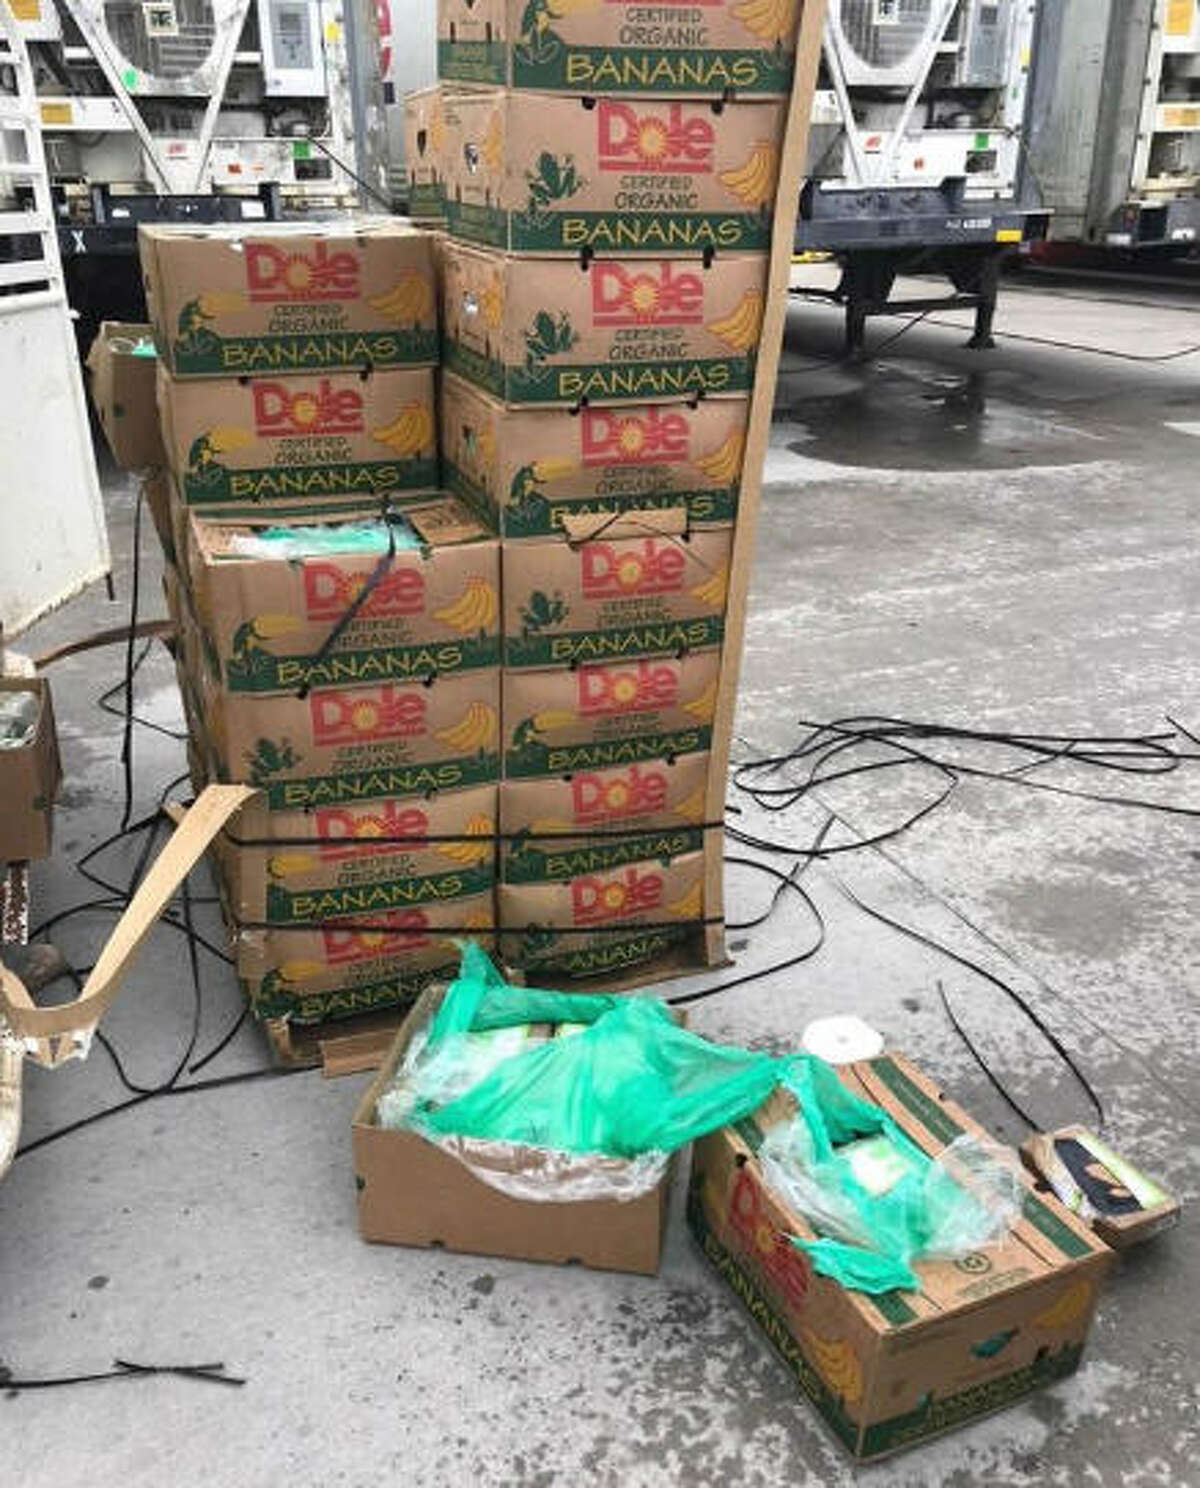 PHOTOS: Smugglers' blues Prison guards uncovered $17.8 million of cocaine hidden in a shipment of donated bananas. >>Agents have discovered many other tricks of the smugglers' trade ...